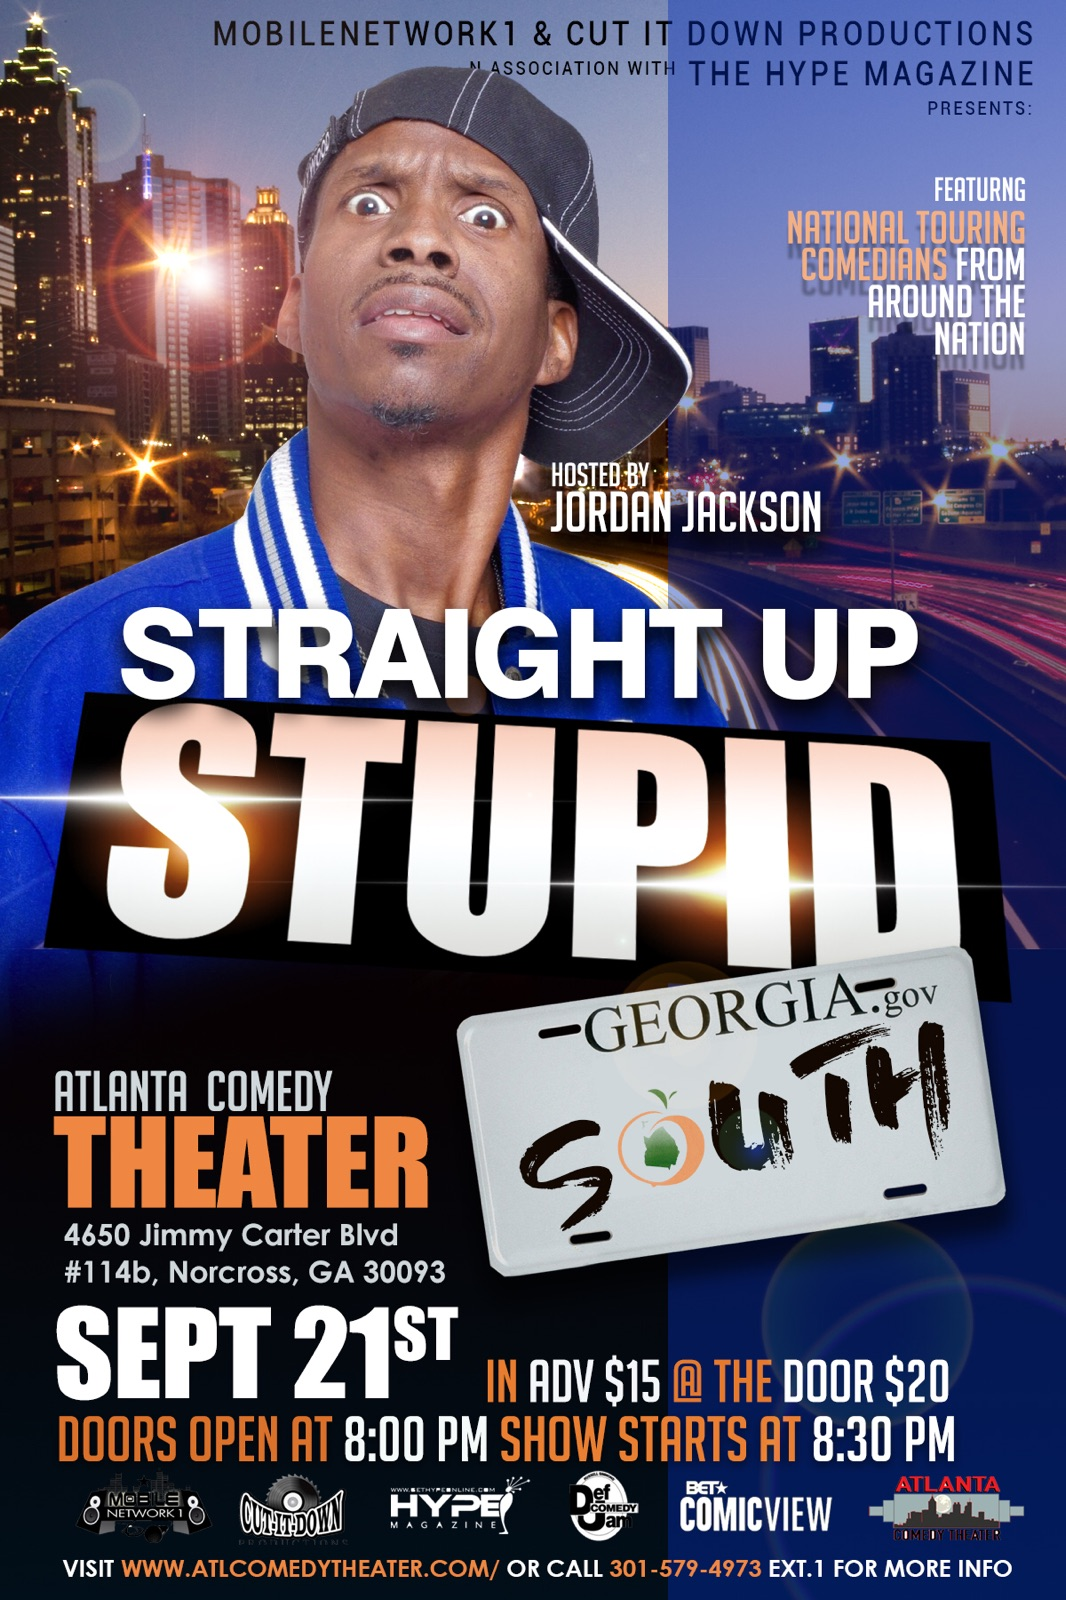 Straight Theater Makeup On Myself: STRAIGHT UP STUPID SOUTH Hosted By Jordan Jackson